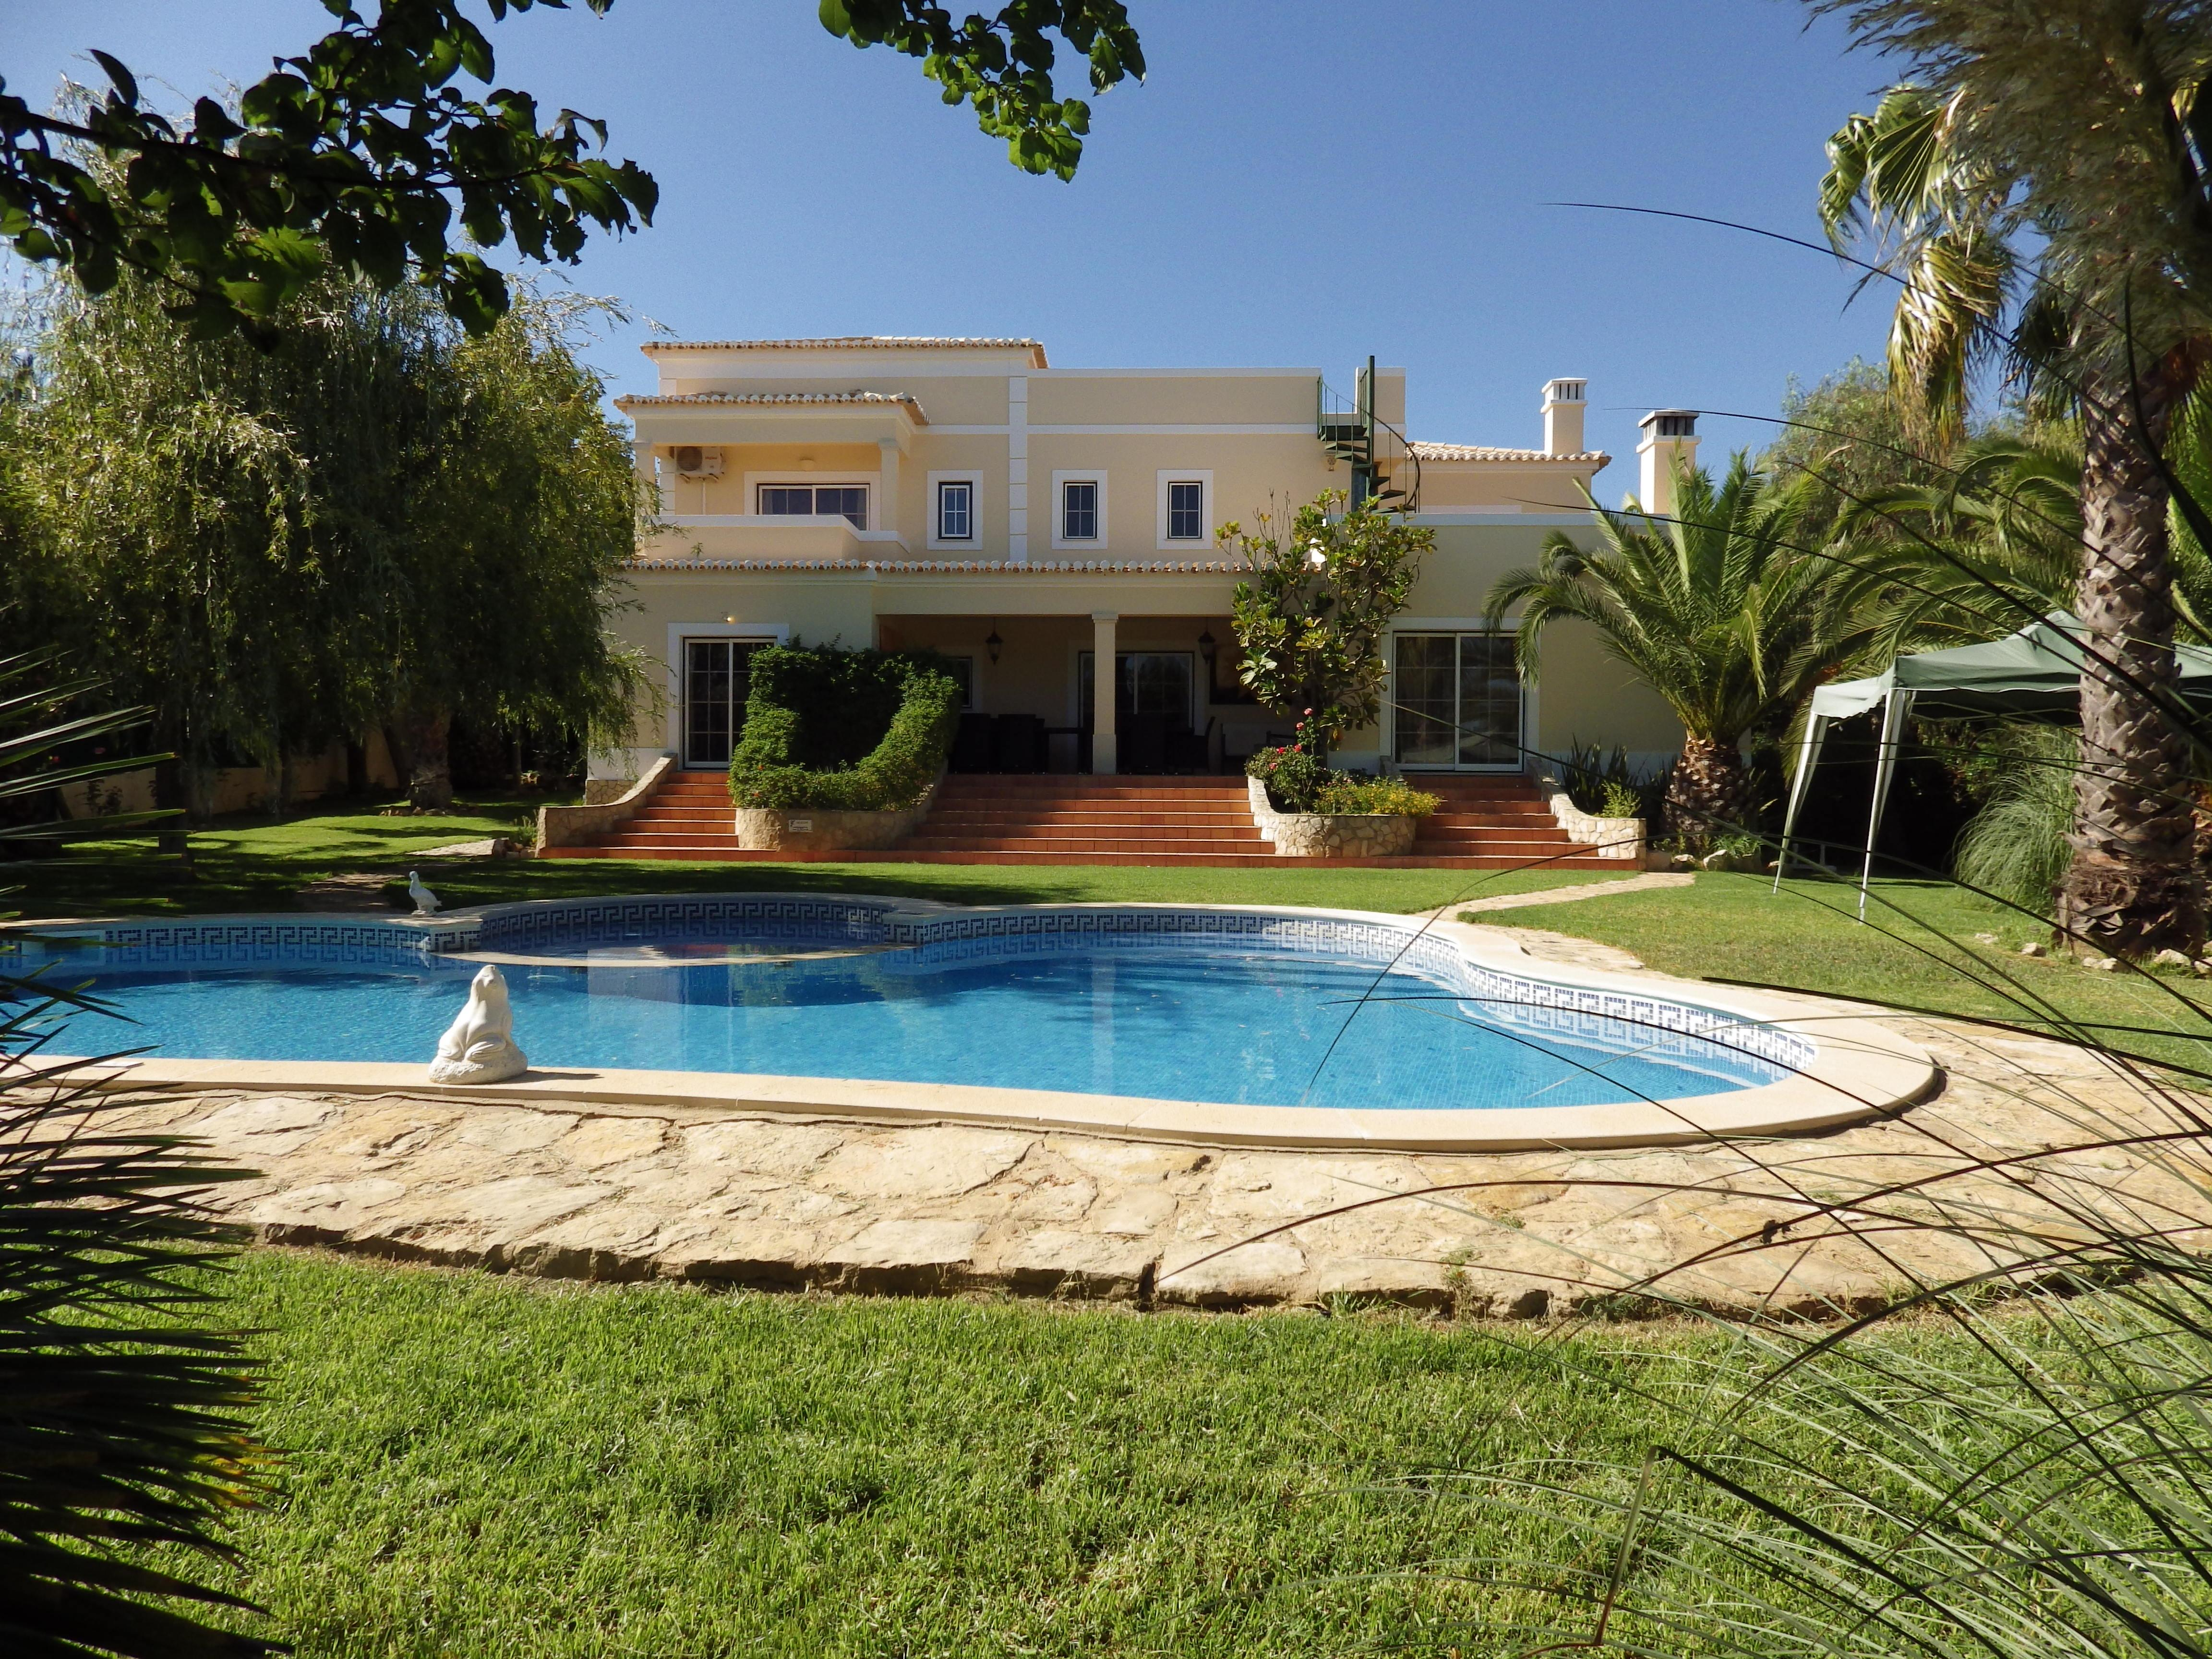 Single Family Home for Sale at Detached house, 5 bedrooms, for Sale Other Portugal, Other Areas In Portugal, 8400-453 Portugal